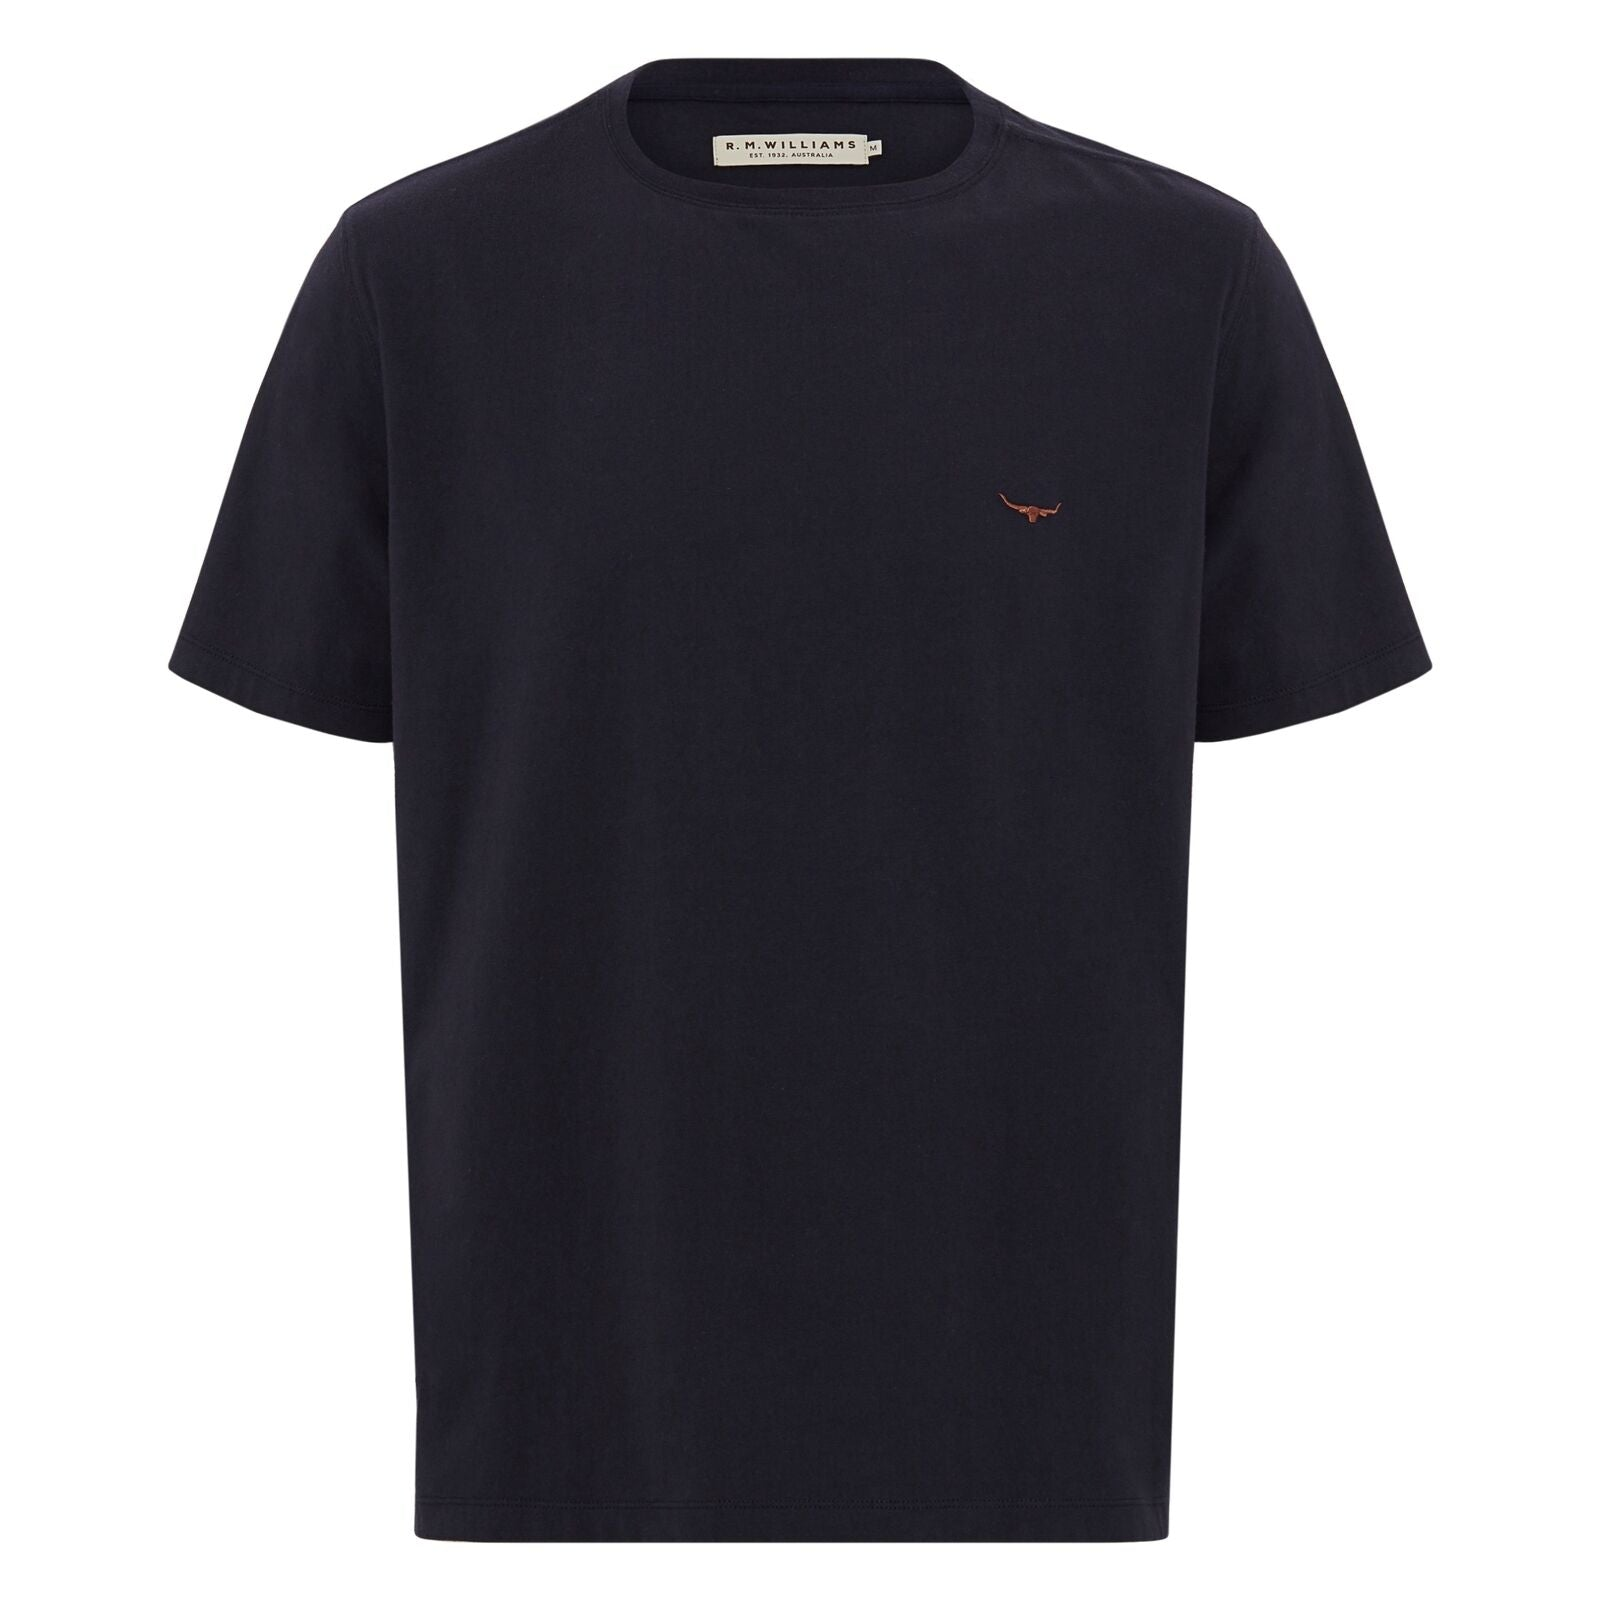 RM Williams Parson T-Shirt